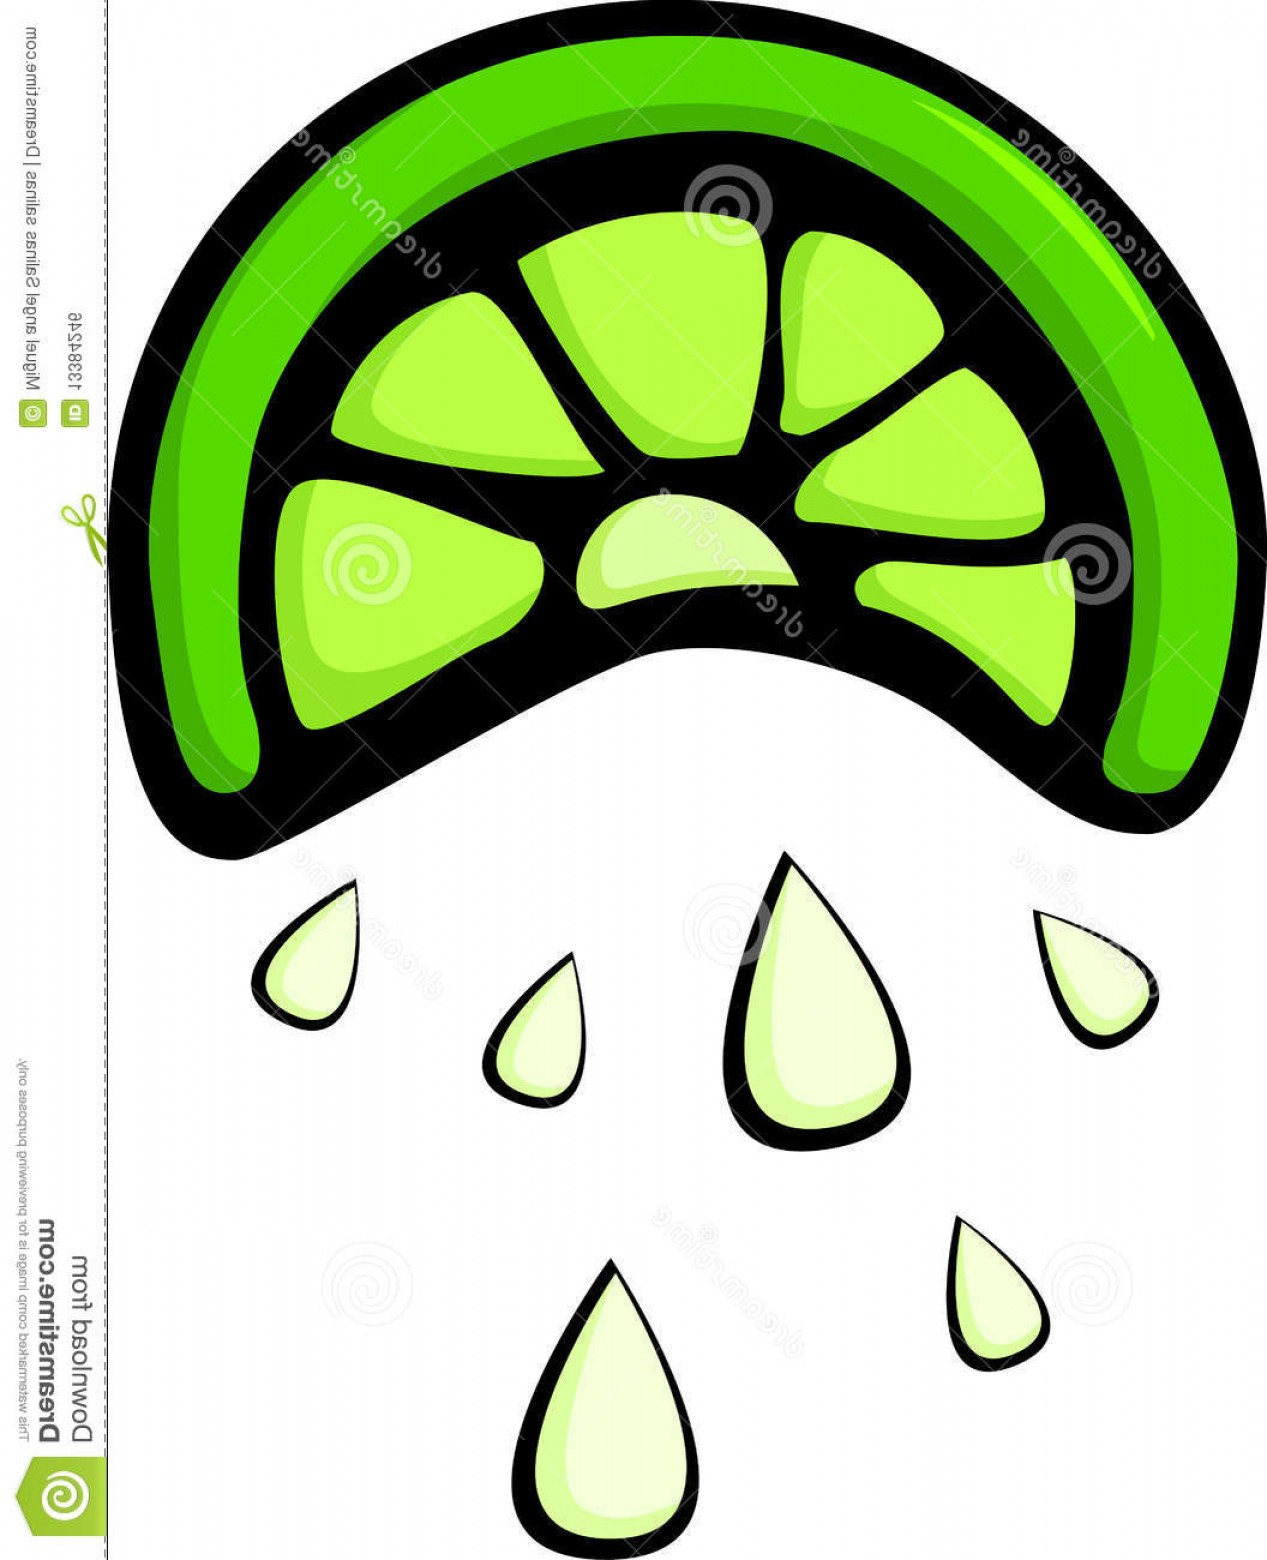 Lime Wedge Vector Art: Royalty Free Stock Image Squeezed Lemon Slice Vector Illustration Image